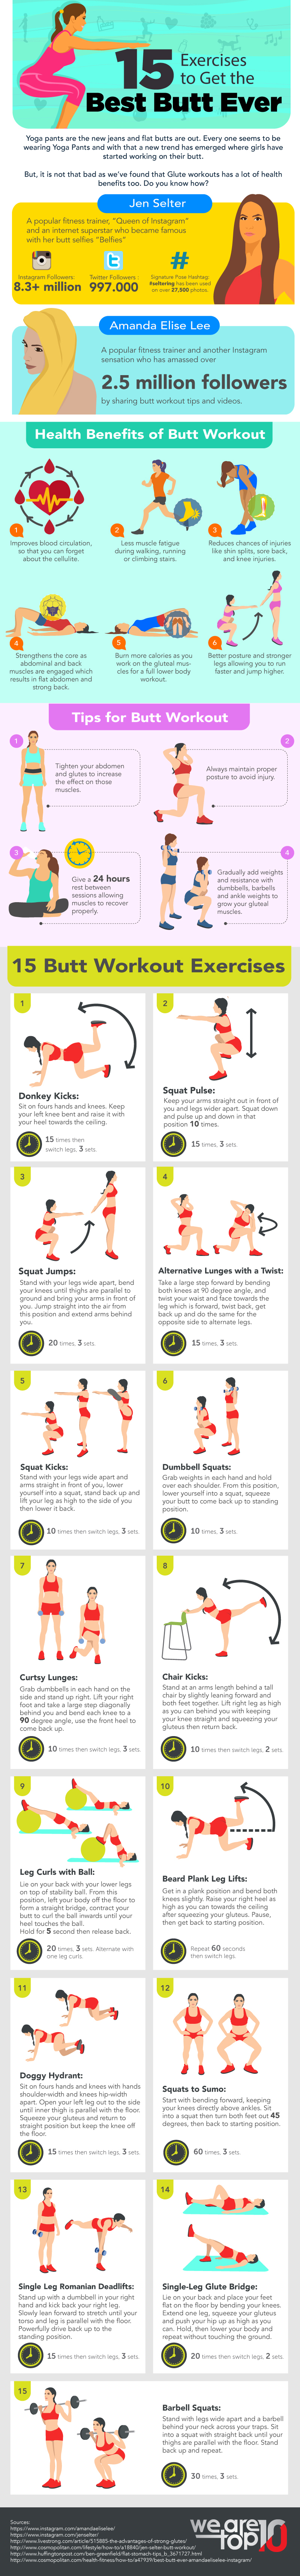 The Year of the Butt: 15 Great Butt Exercises that Work the Magic - Infographic